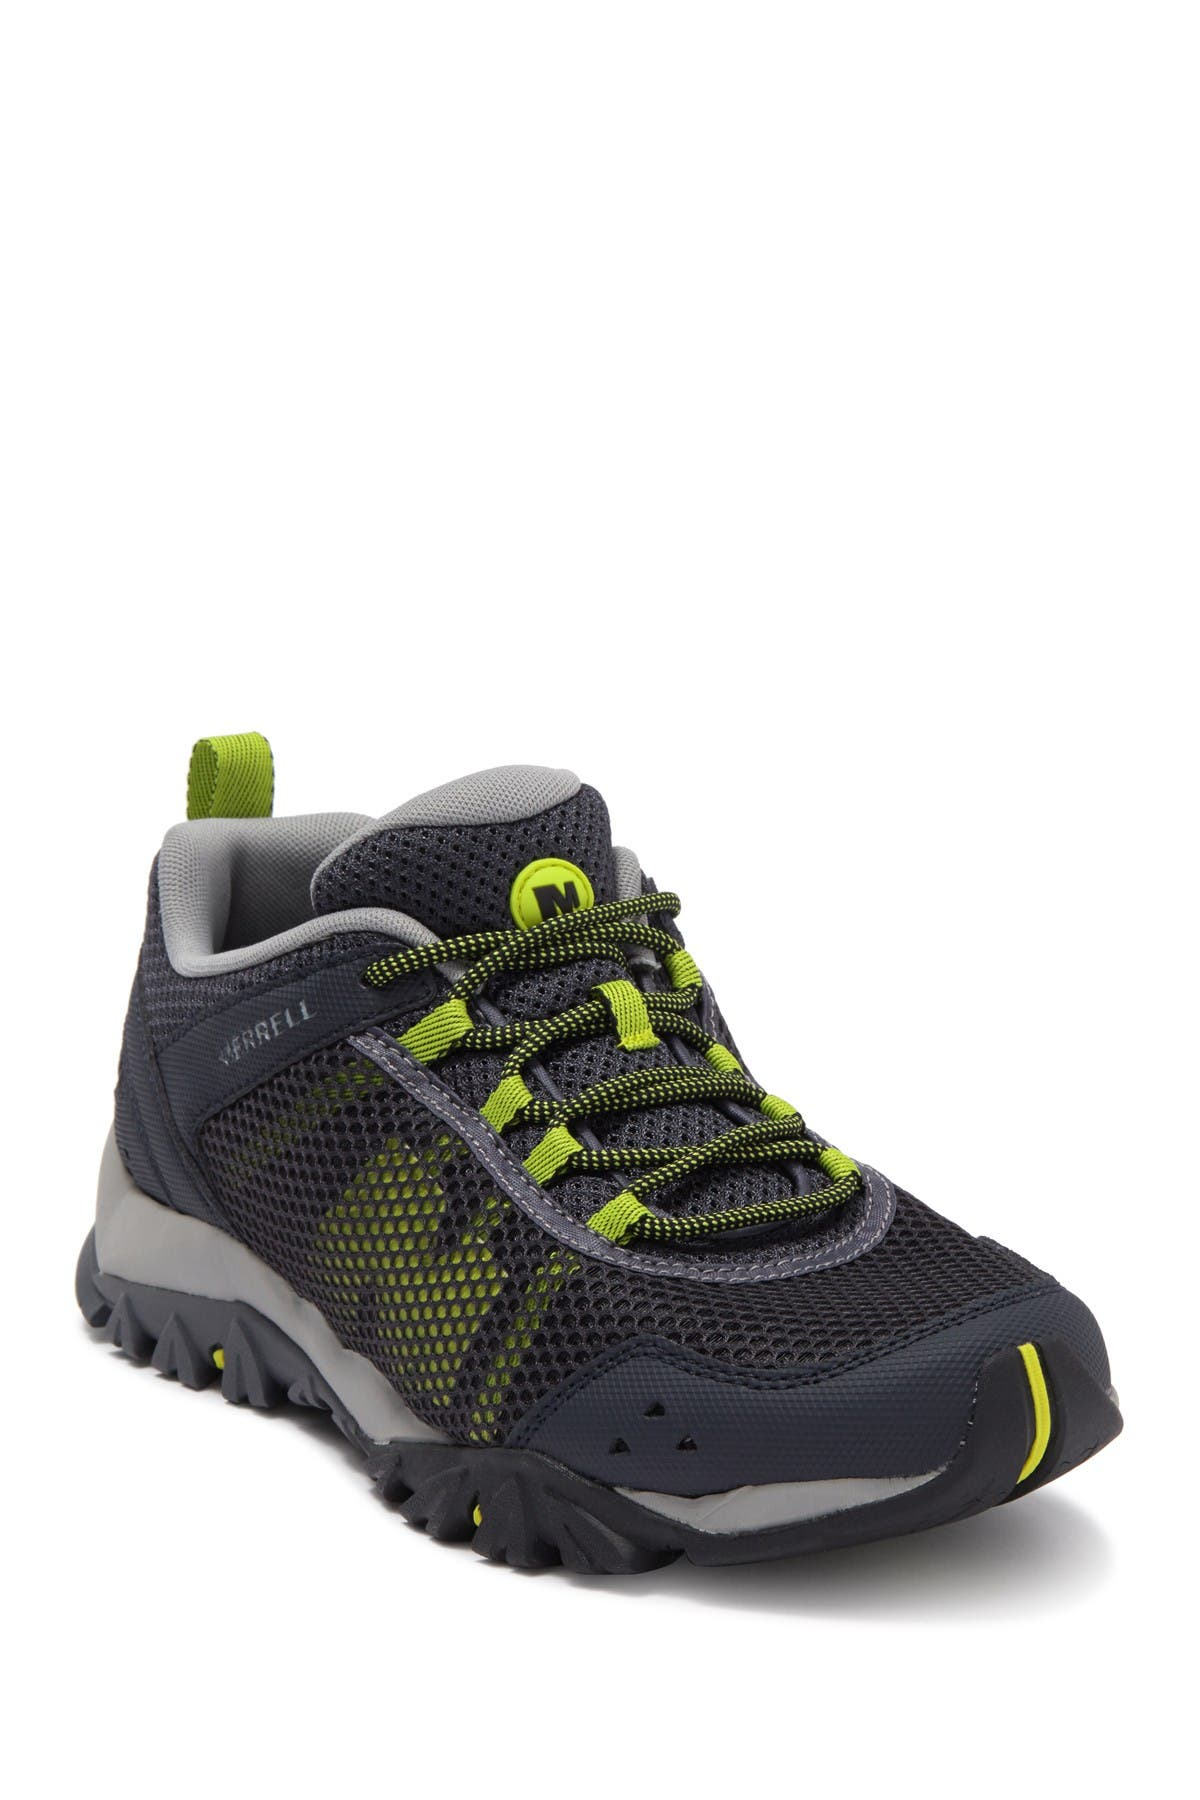 Image of Merrell Riverbed 2 Hiking Sneaker